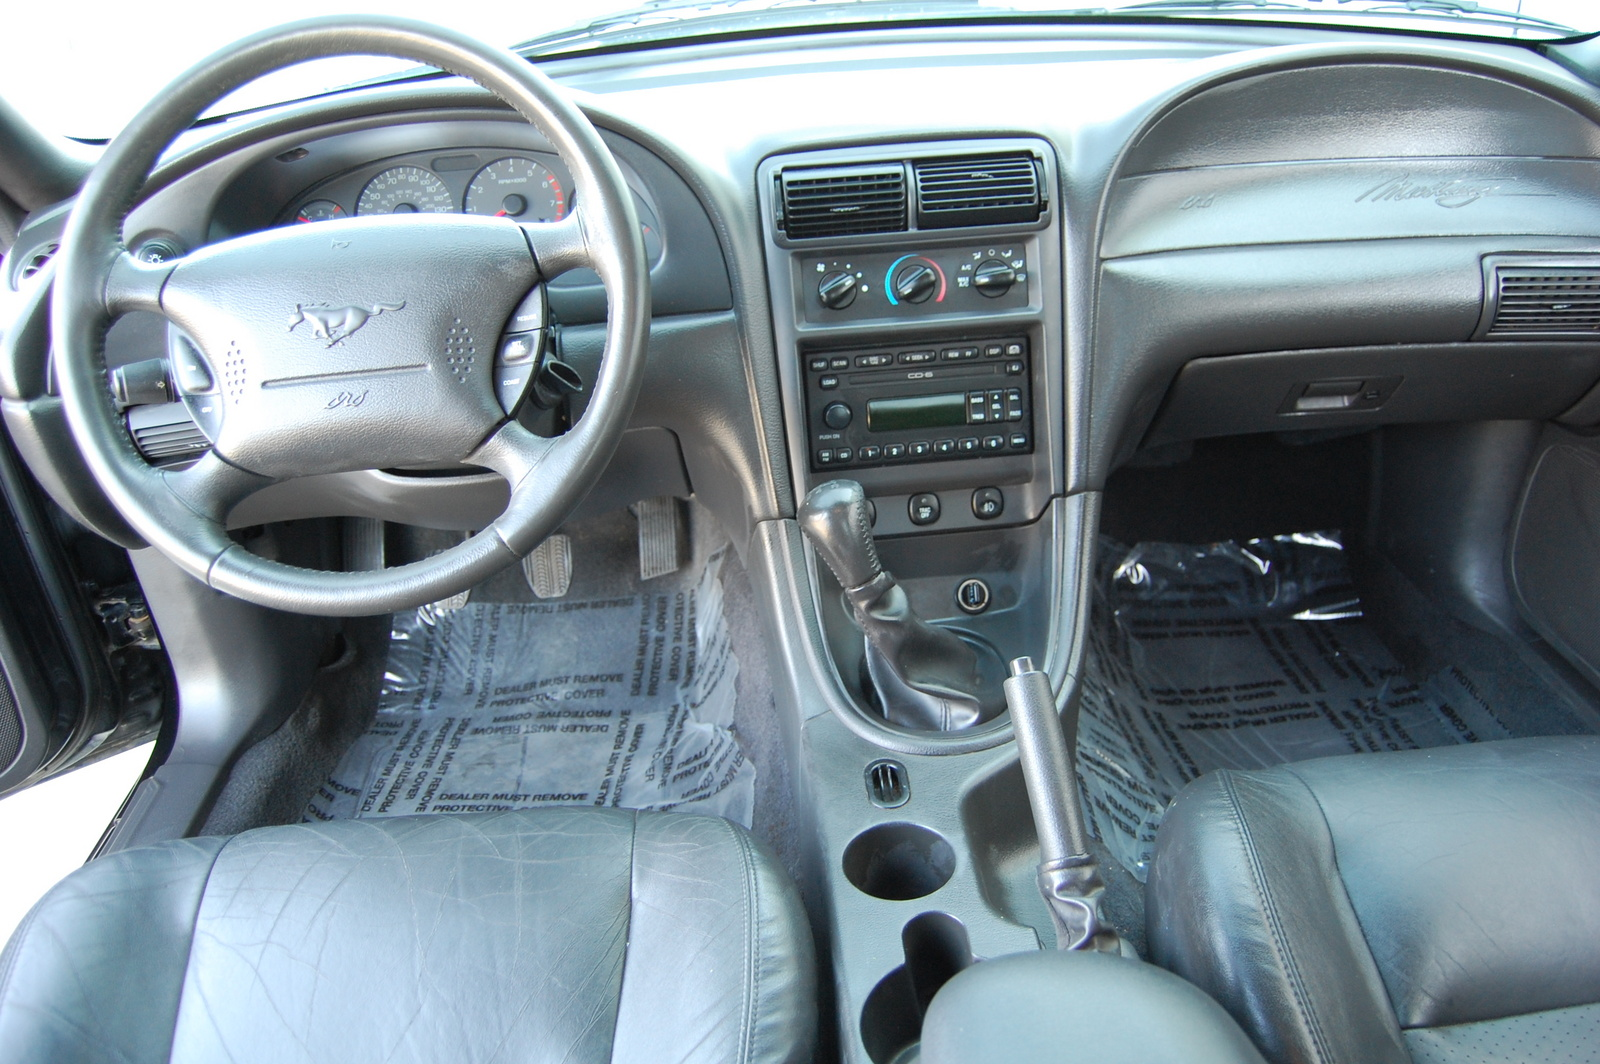 2001 Ford Mustang - Interior Pictures - CarGurus